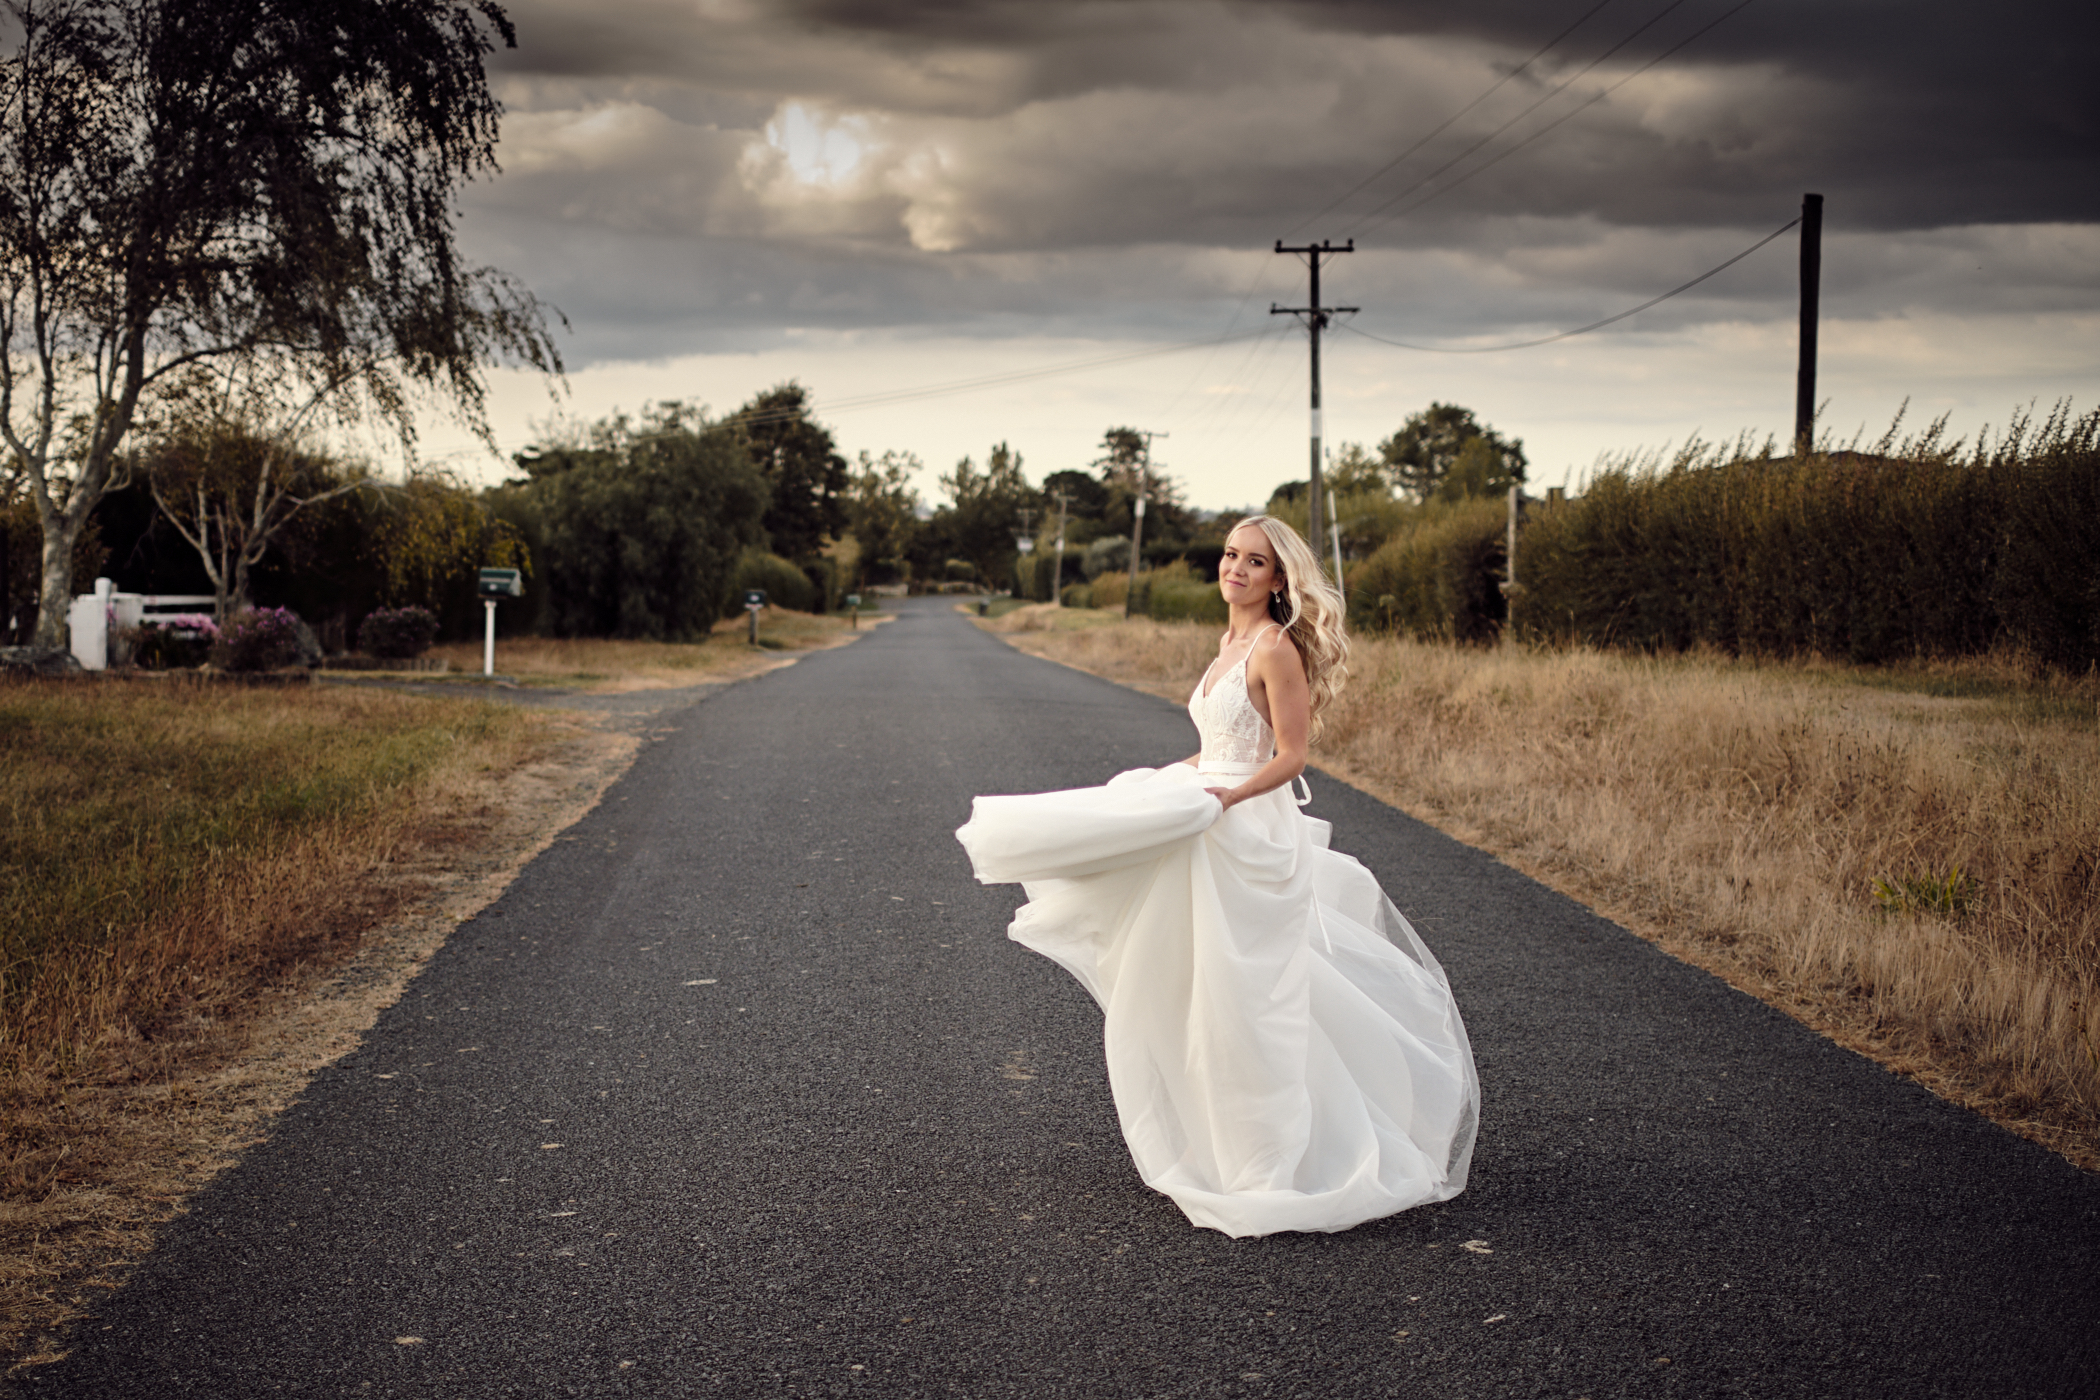 Bride on road